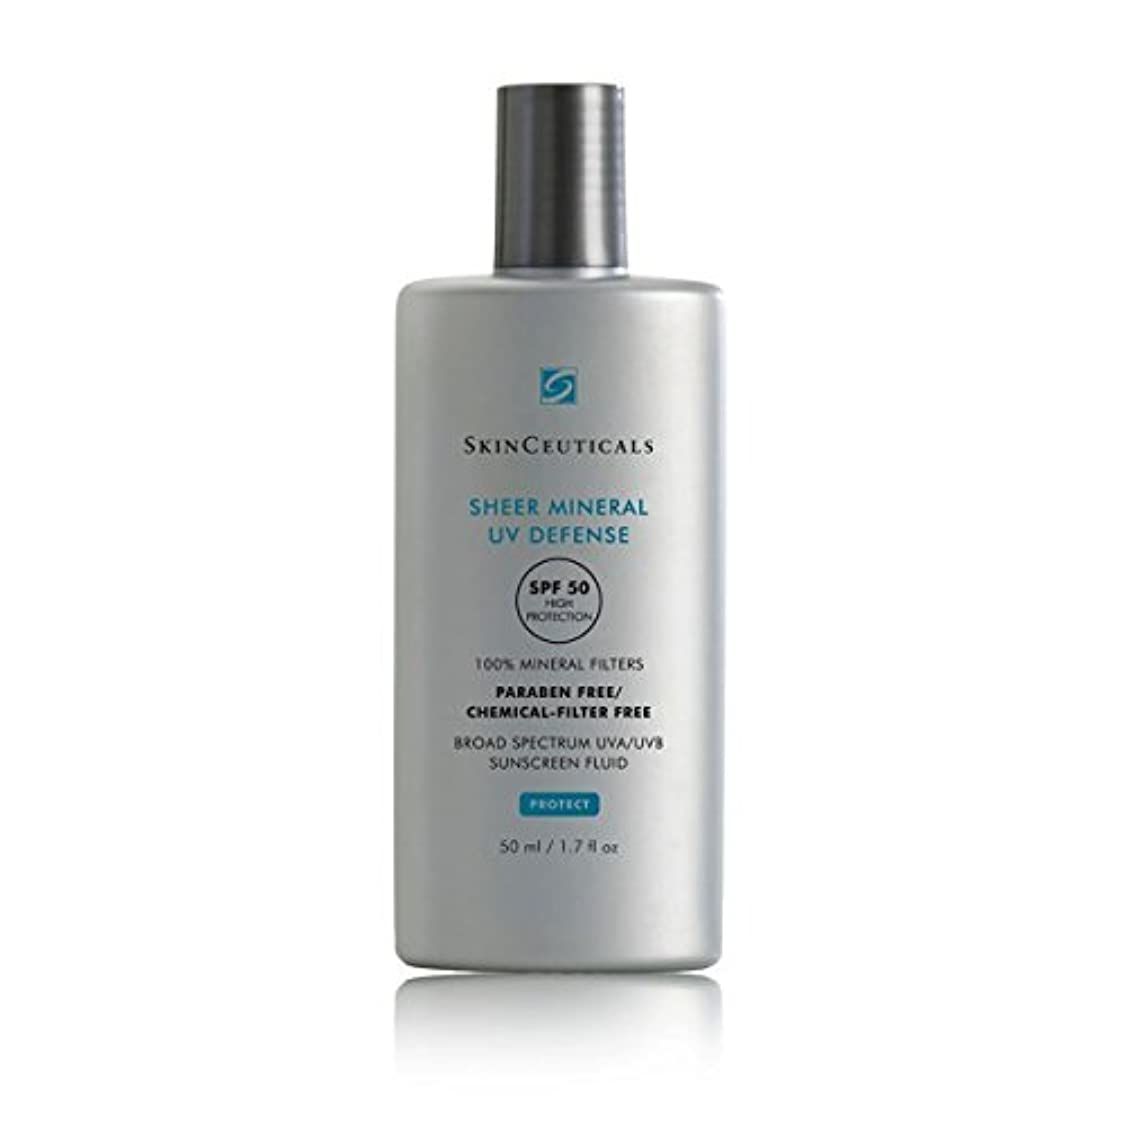 和持つドローSkinceuticals Protect Sheer Mineral Uv Defense Spf50 50ml [並行輸入品]